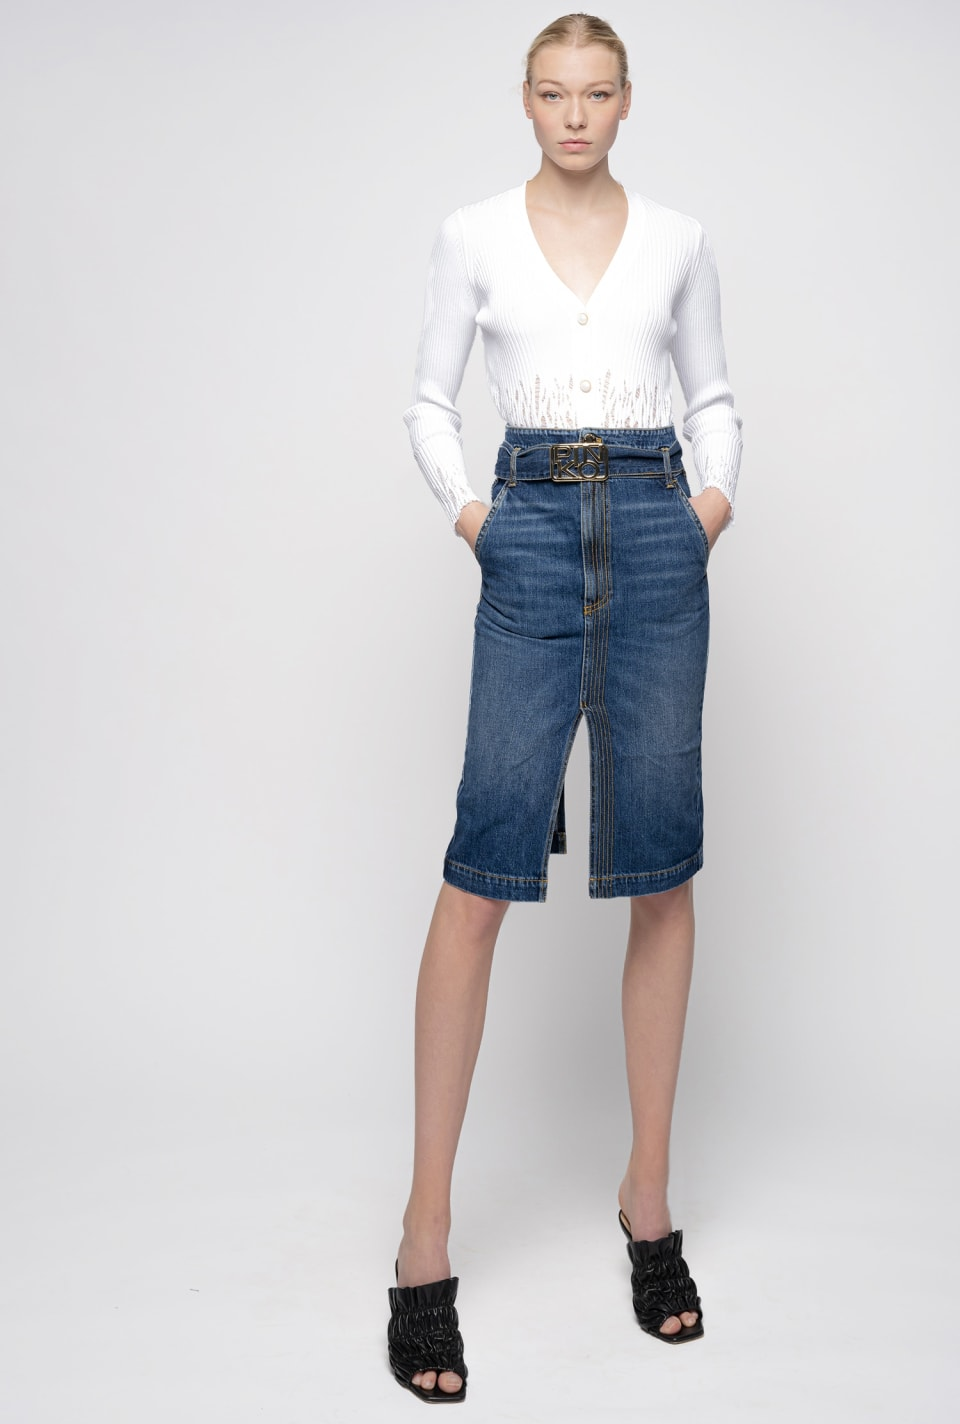 Gonna midi in denim - Pinko